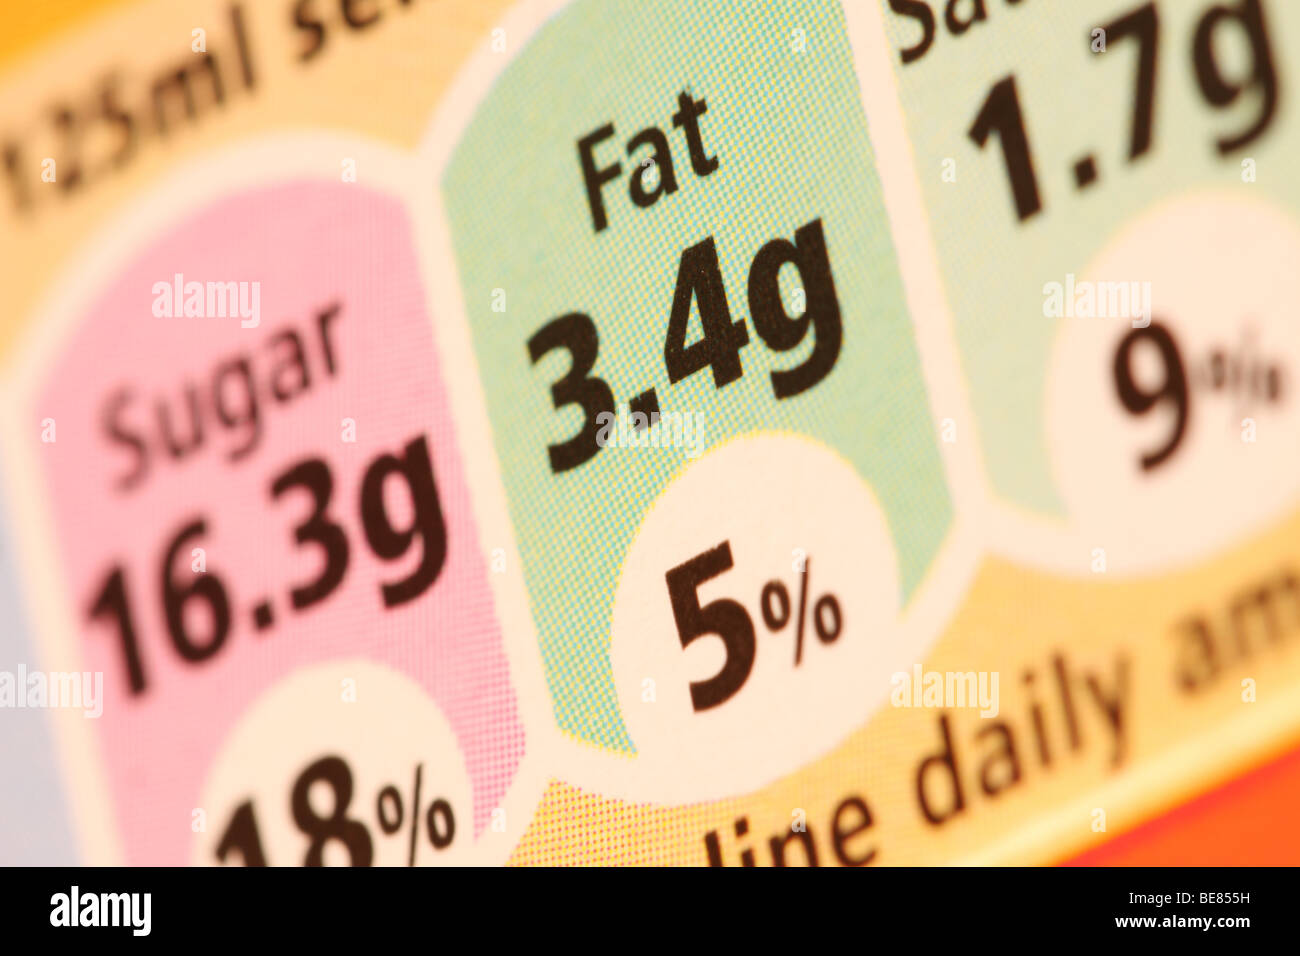 Fat content processed food label contents on food packaging labeling - Stock Image